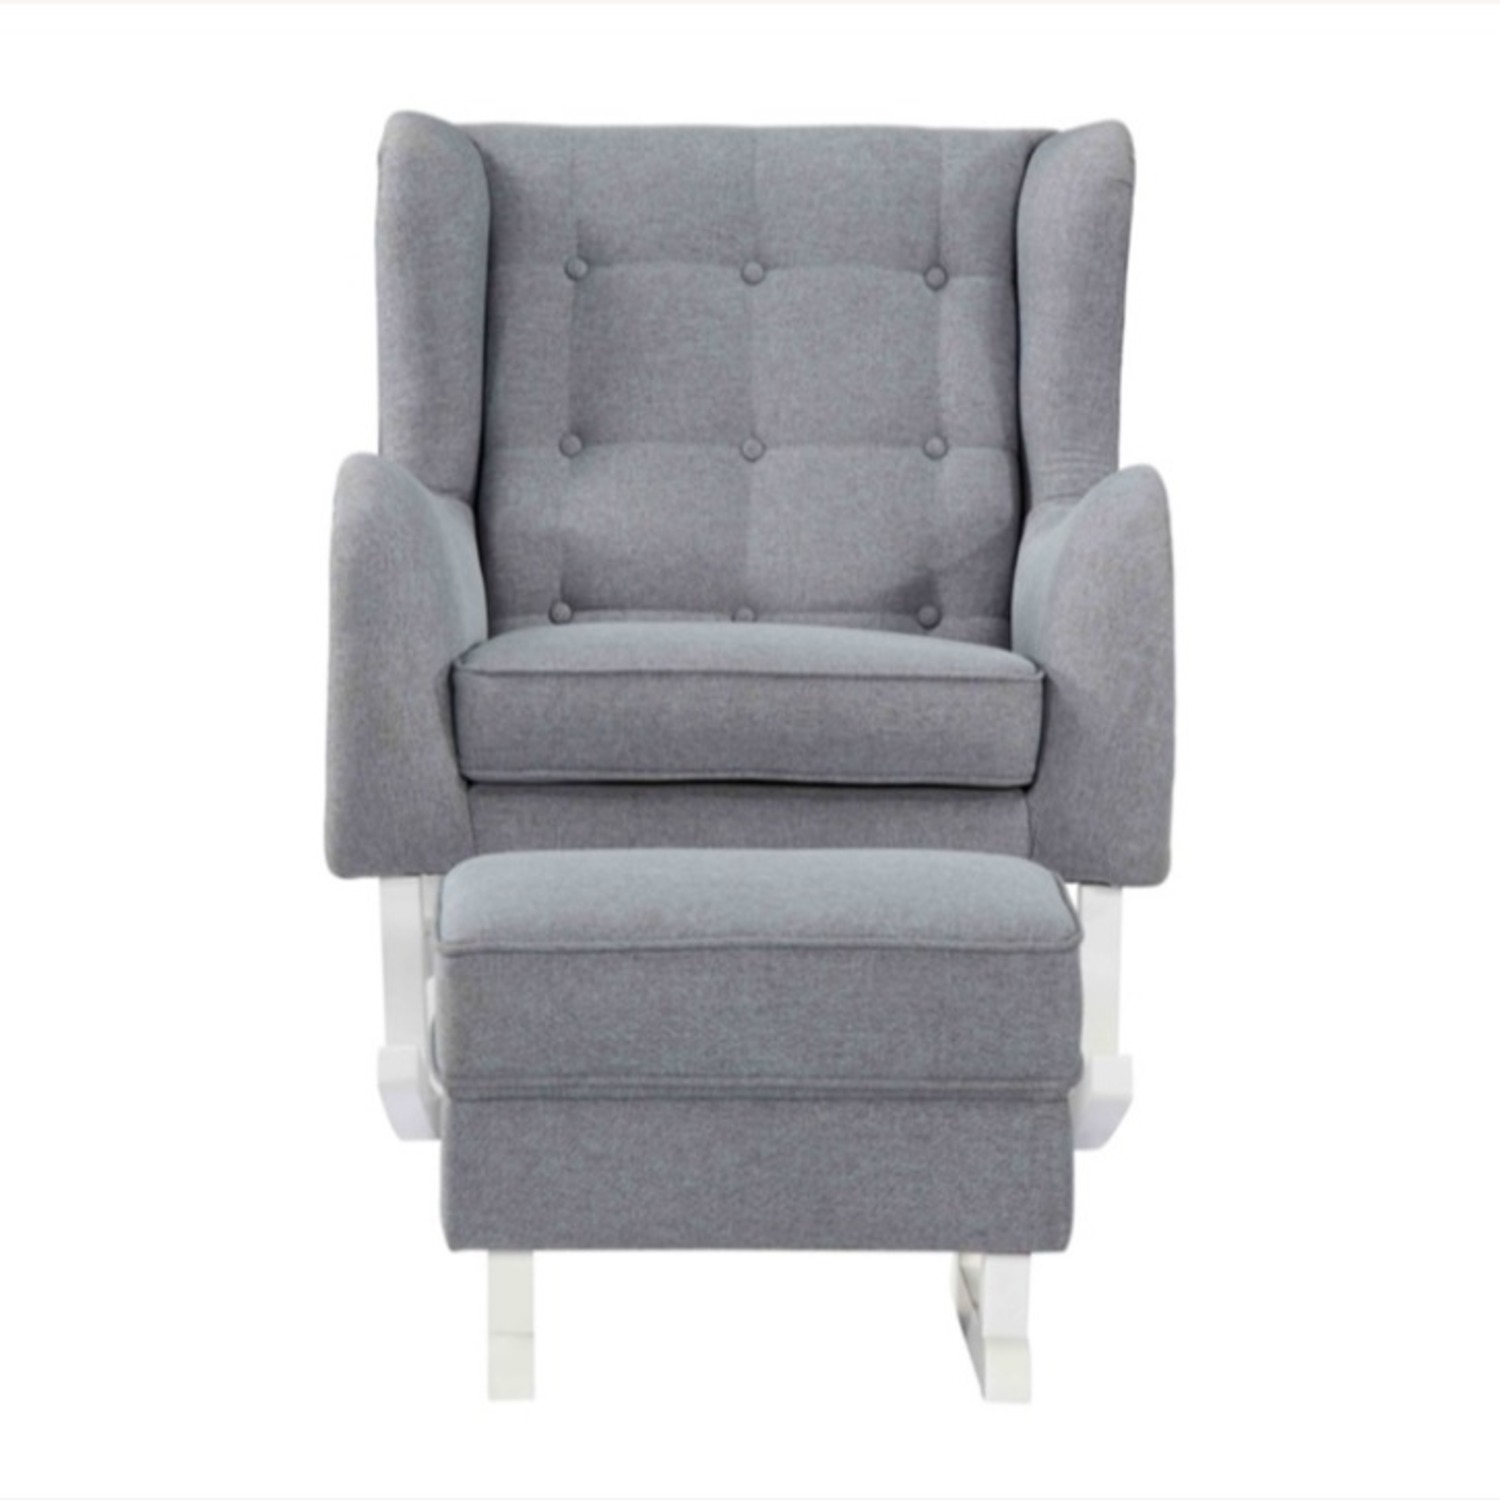 Baby Lounge Chair & Ottoman In Gray Fabric - image-6